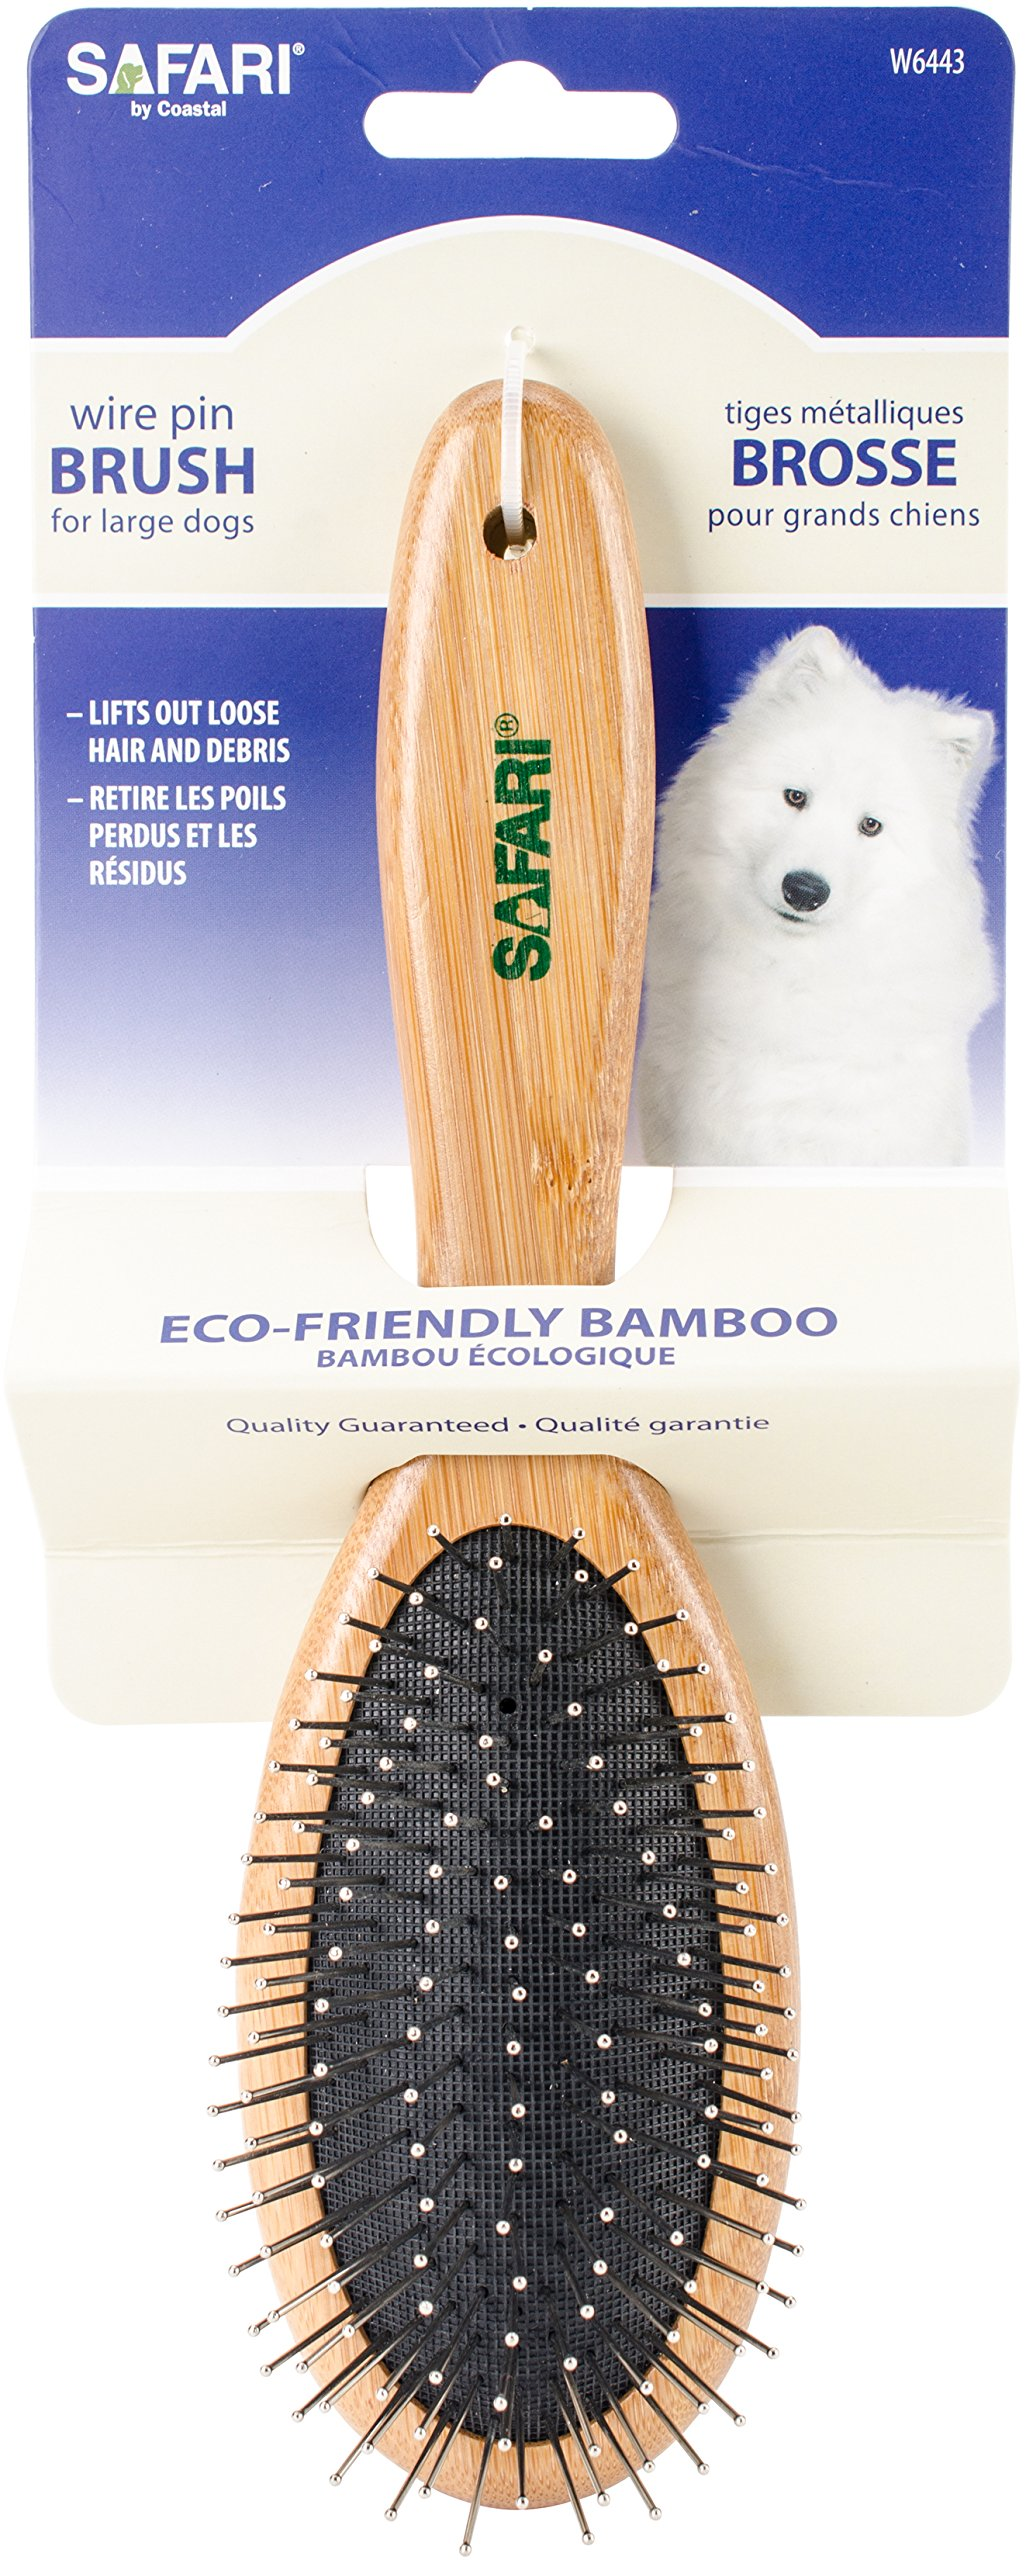 Safari Wire Pin Dog Brush with Bamboo Handle, Medium/Large